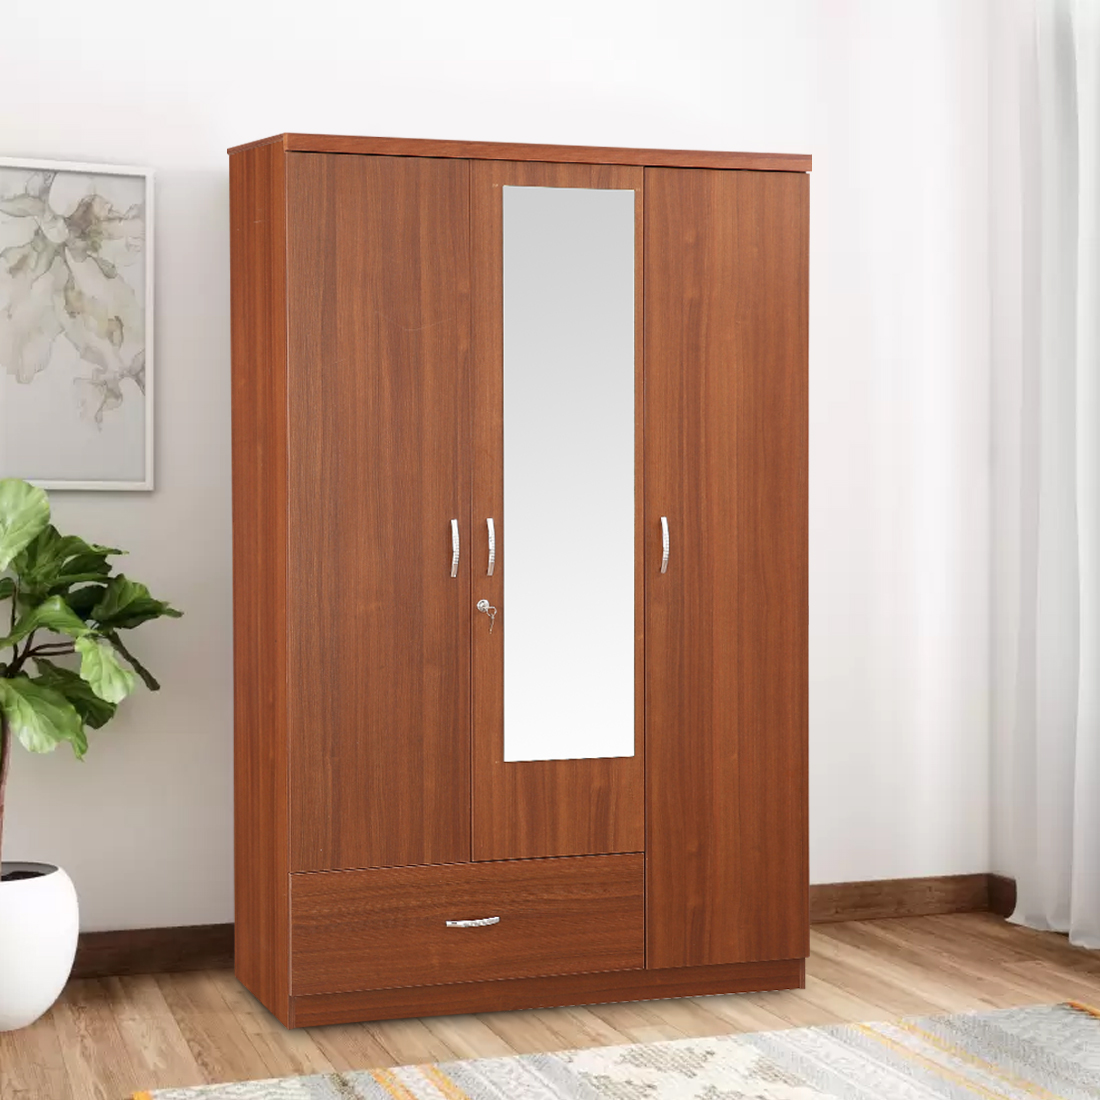 Buy Ultima Engineered Wood Three Door Wardrobe In Regato